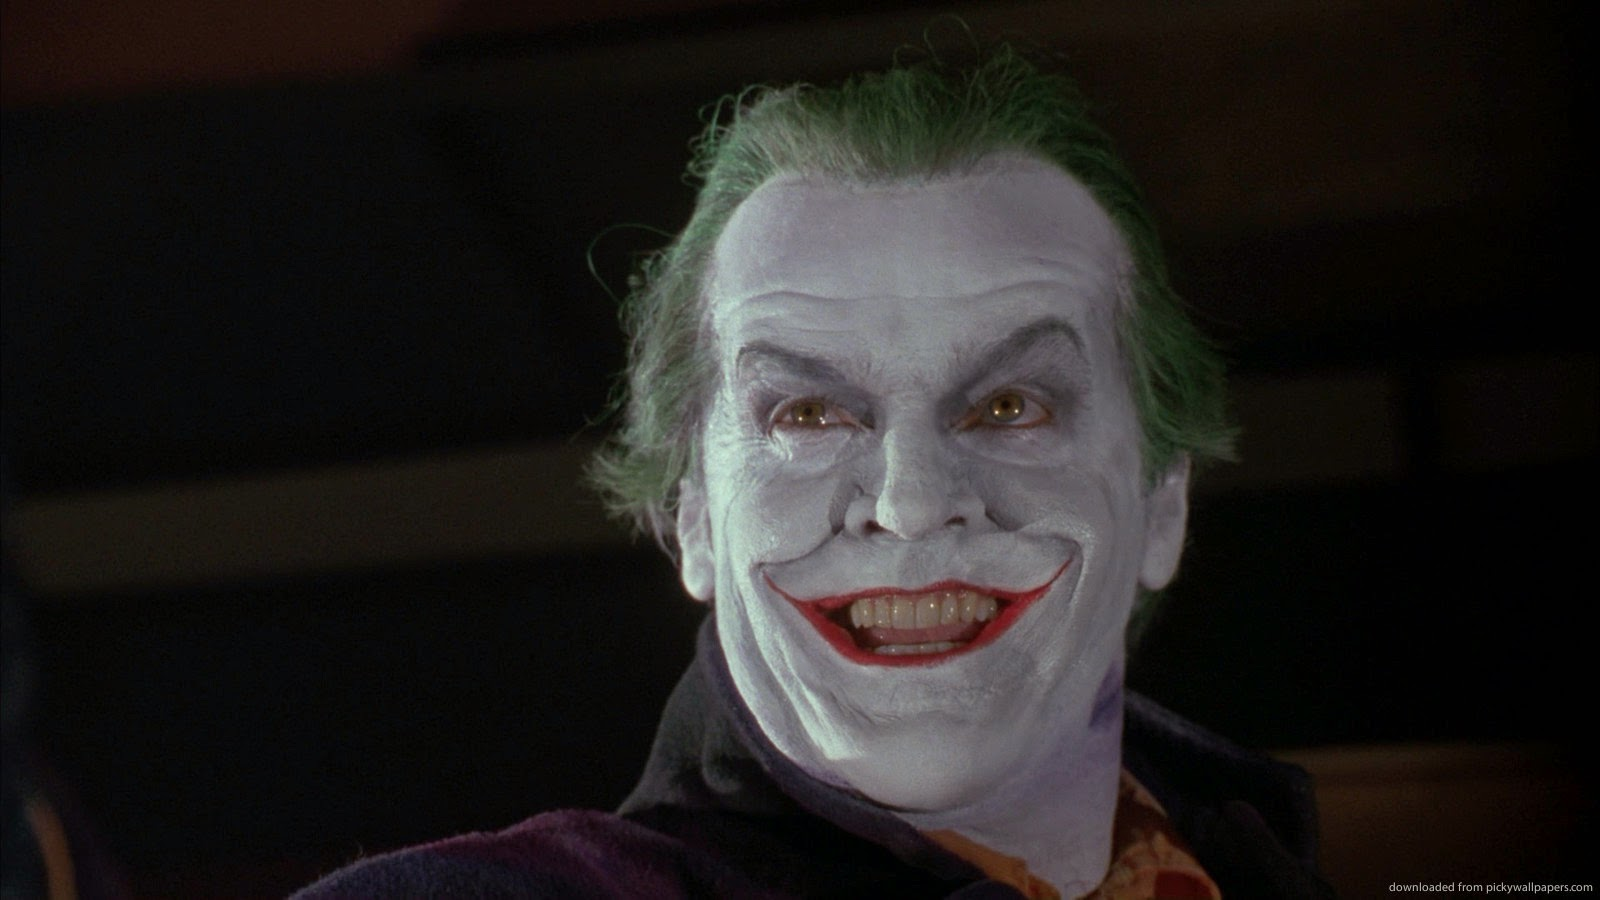 Jack Nicholson as The Joker in 1989's Batman